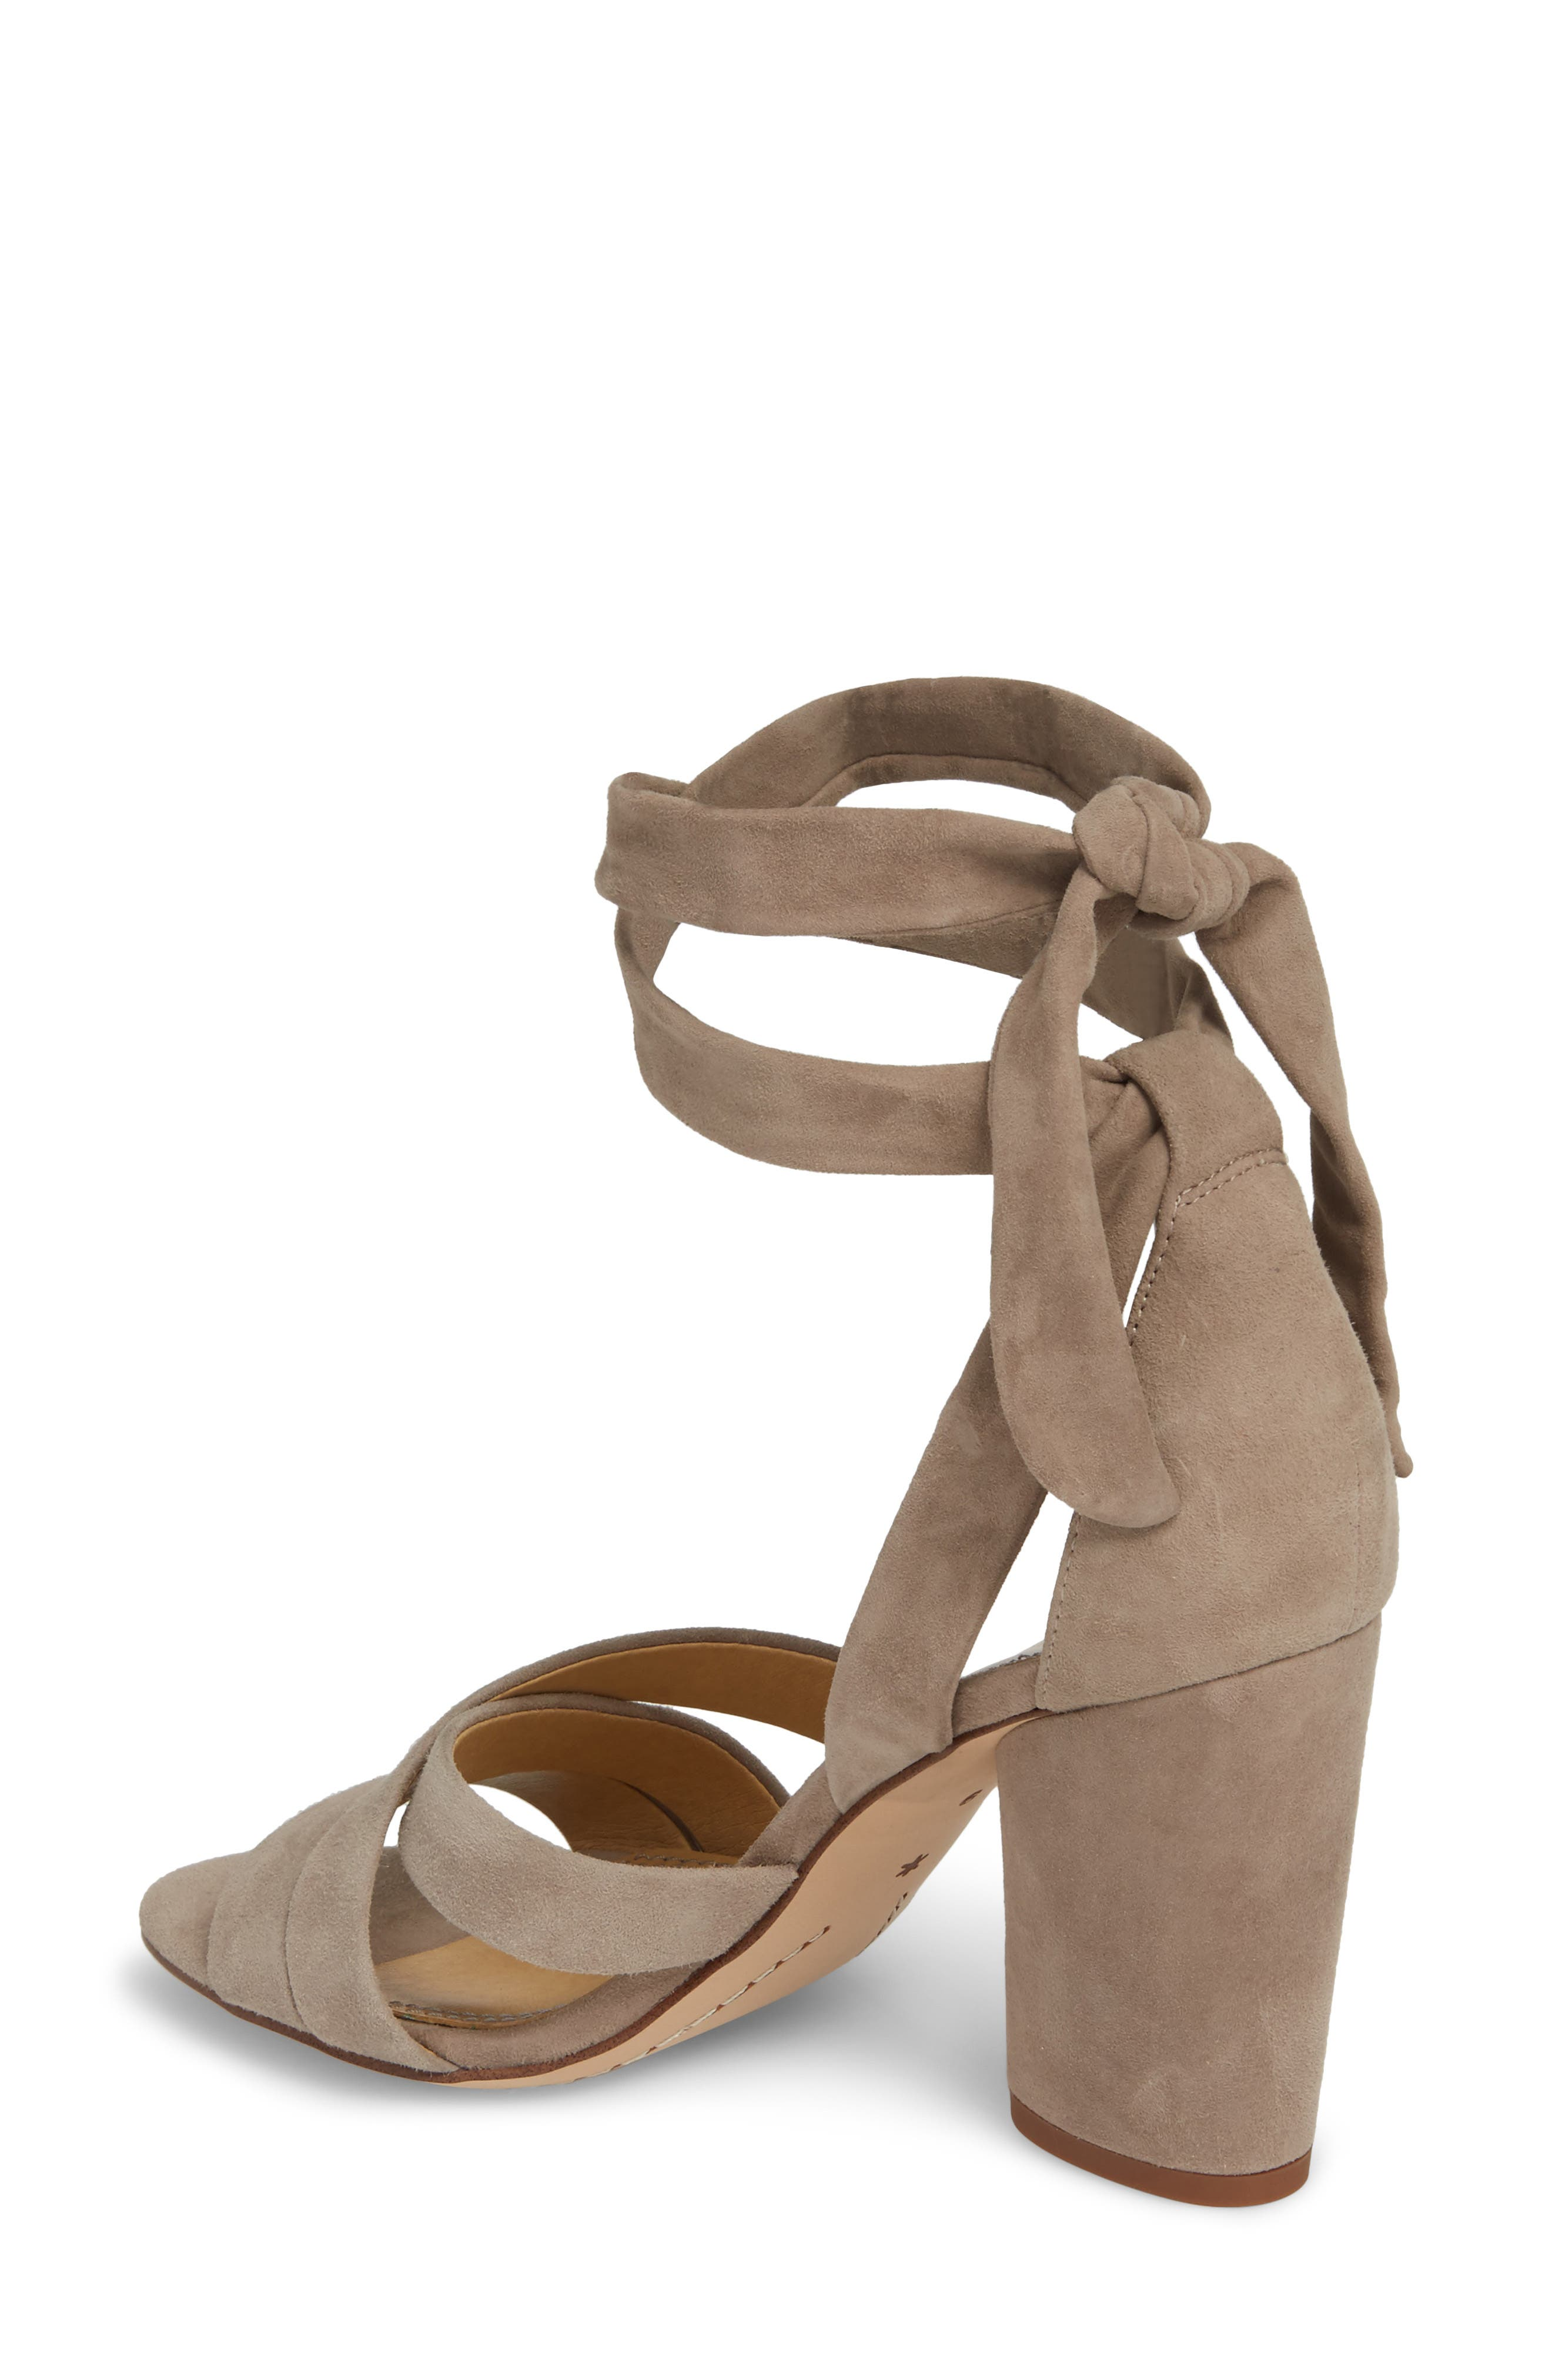 Fergie Lace-Up Sandal,                             Alternate thumbnail 2, color,                             Taupe Suede